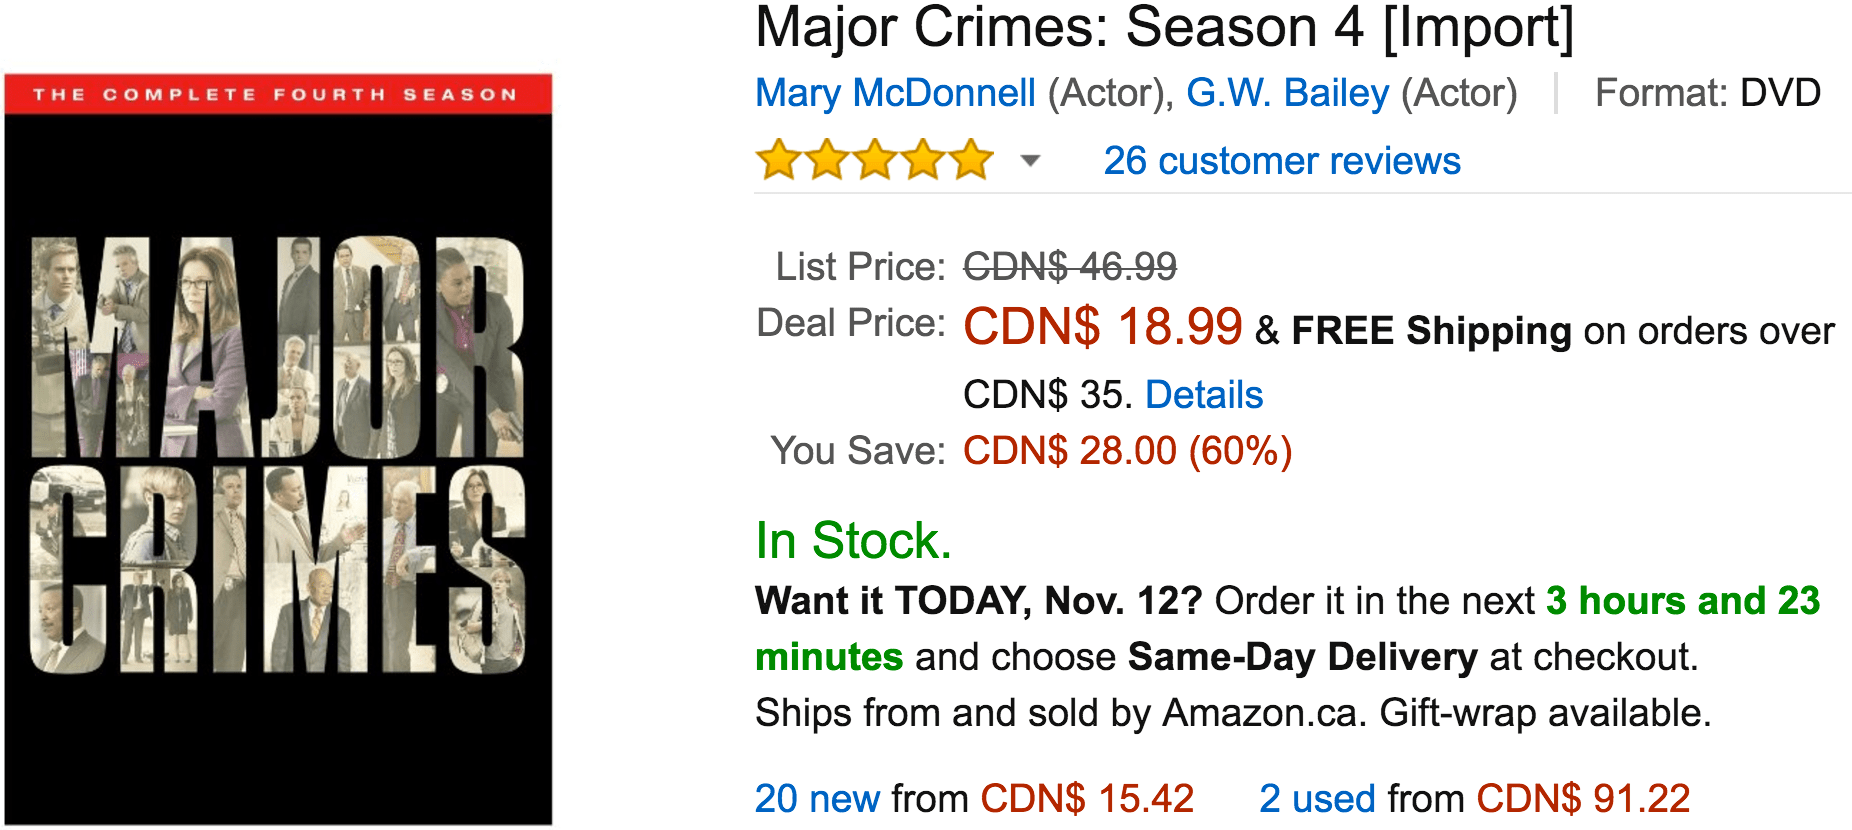 Amazon Canada Black Friday Today's Deals: Save 60% On Major Crimes: Season 4, 45% On JOOLA Rally TL 300 Table Tennis Table with Corner Ball Holders and Magnetic Scorers & More Offers